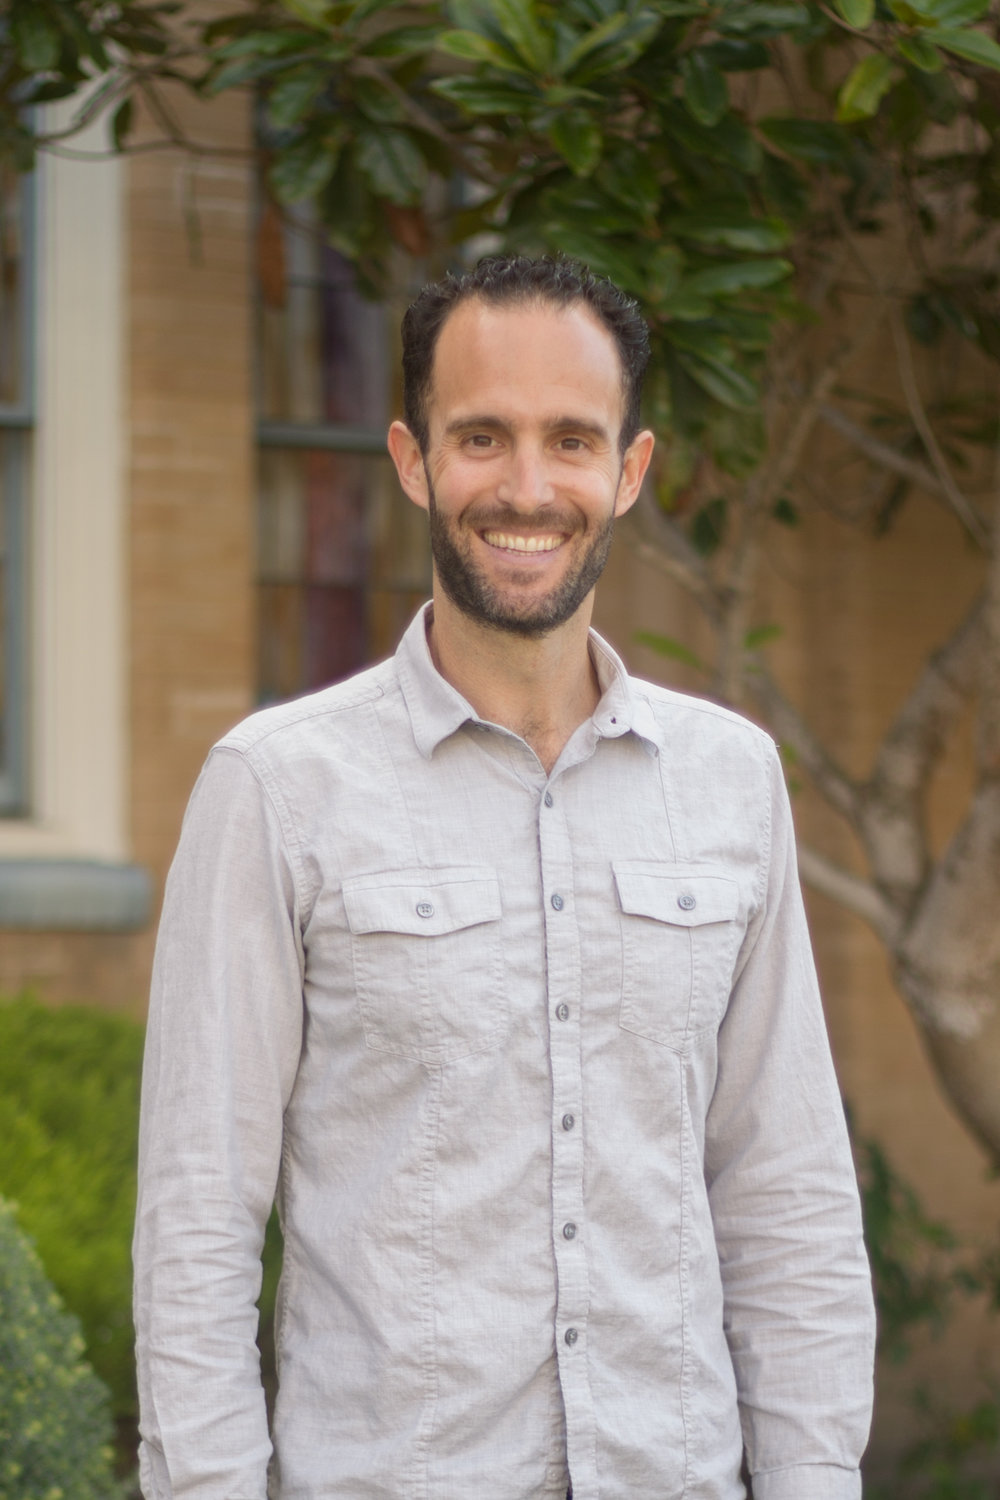 Tony Traback - Lead Pastor of Wellspring Church PG.Formerly he was a Pastor at Lighthouse Christian Center in Washington, and The River Church Community in San Jose. He lives is Pacific Grove with his wife Jeannie and their two kids, Claire & Josiah. If you wish to connect with Tony send him an email at tony@wellspringchurchpg.org